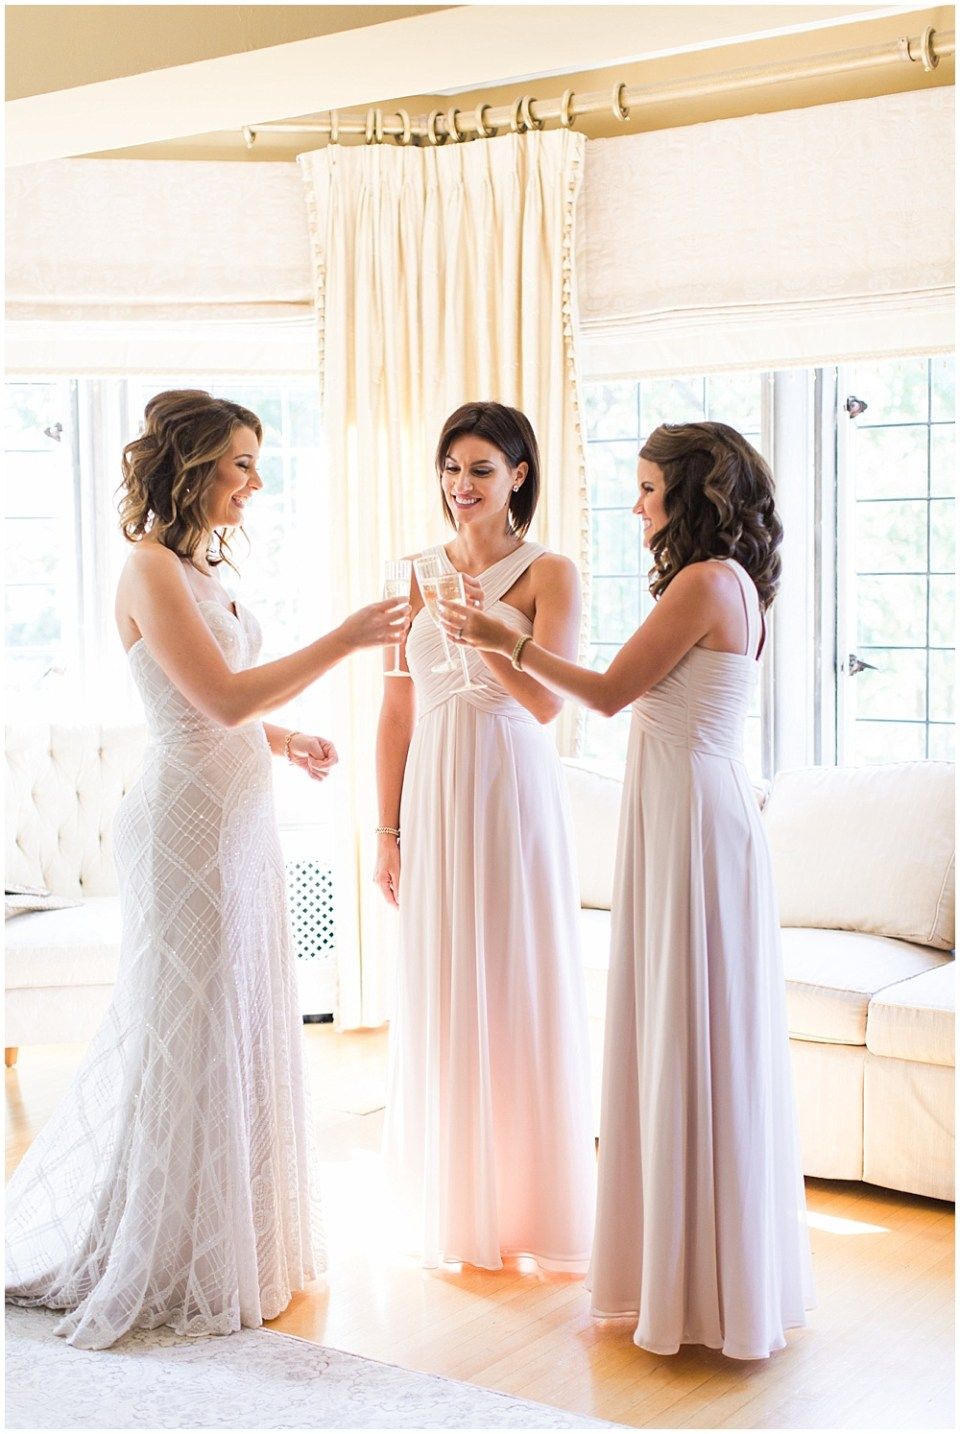 ivory bridesmaid dresses   Navy and Gold Wedding at Laurel Hall with Ivan & Louise Photography + Jessica Dum Wedding Coordination